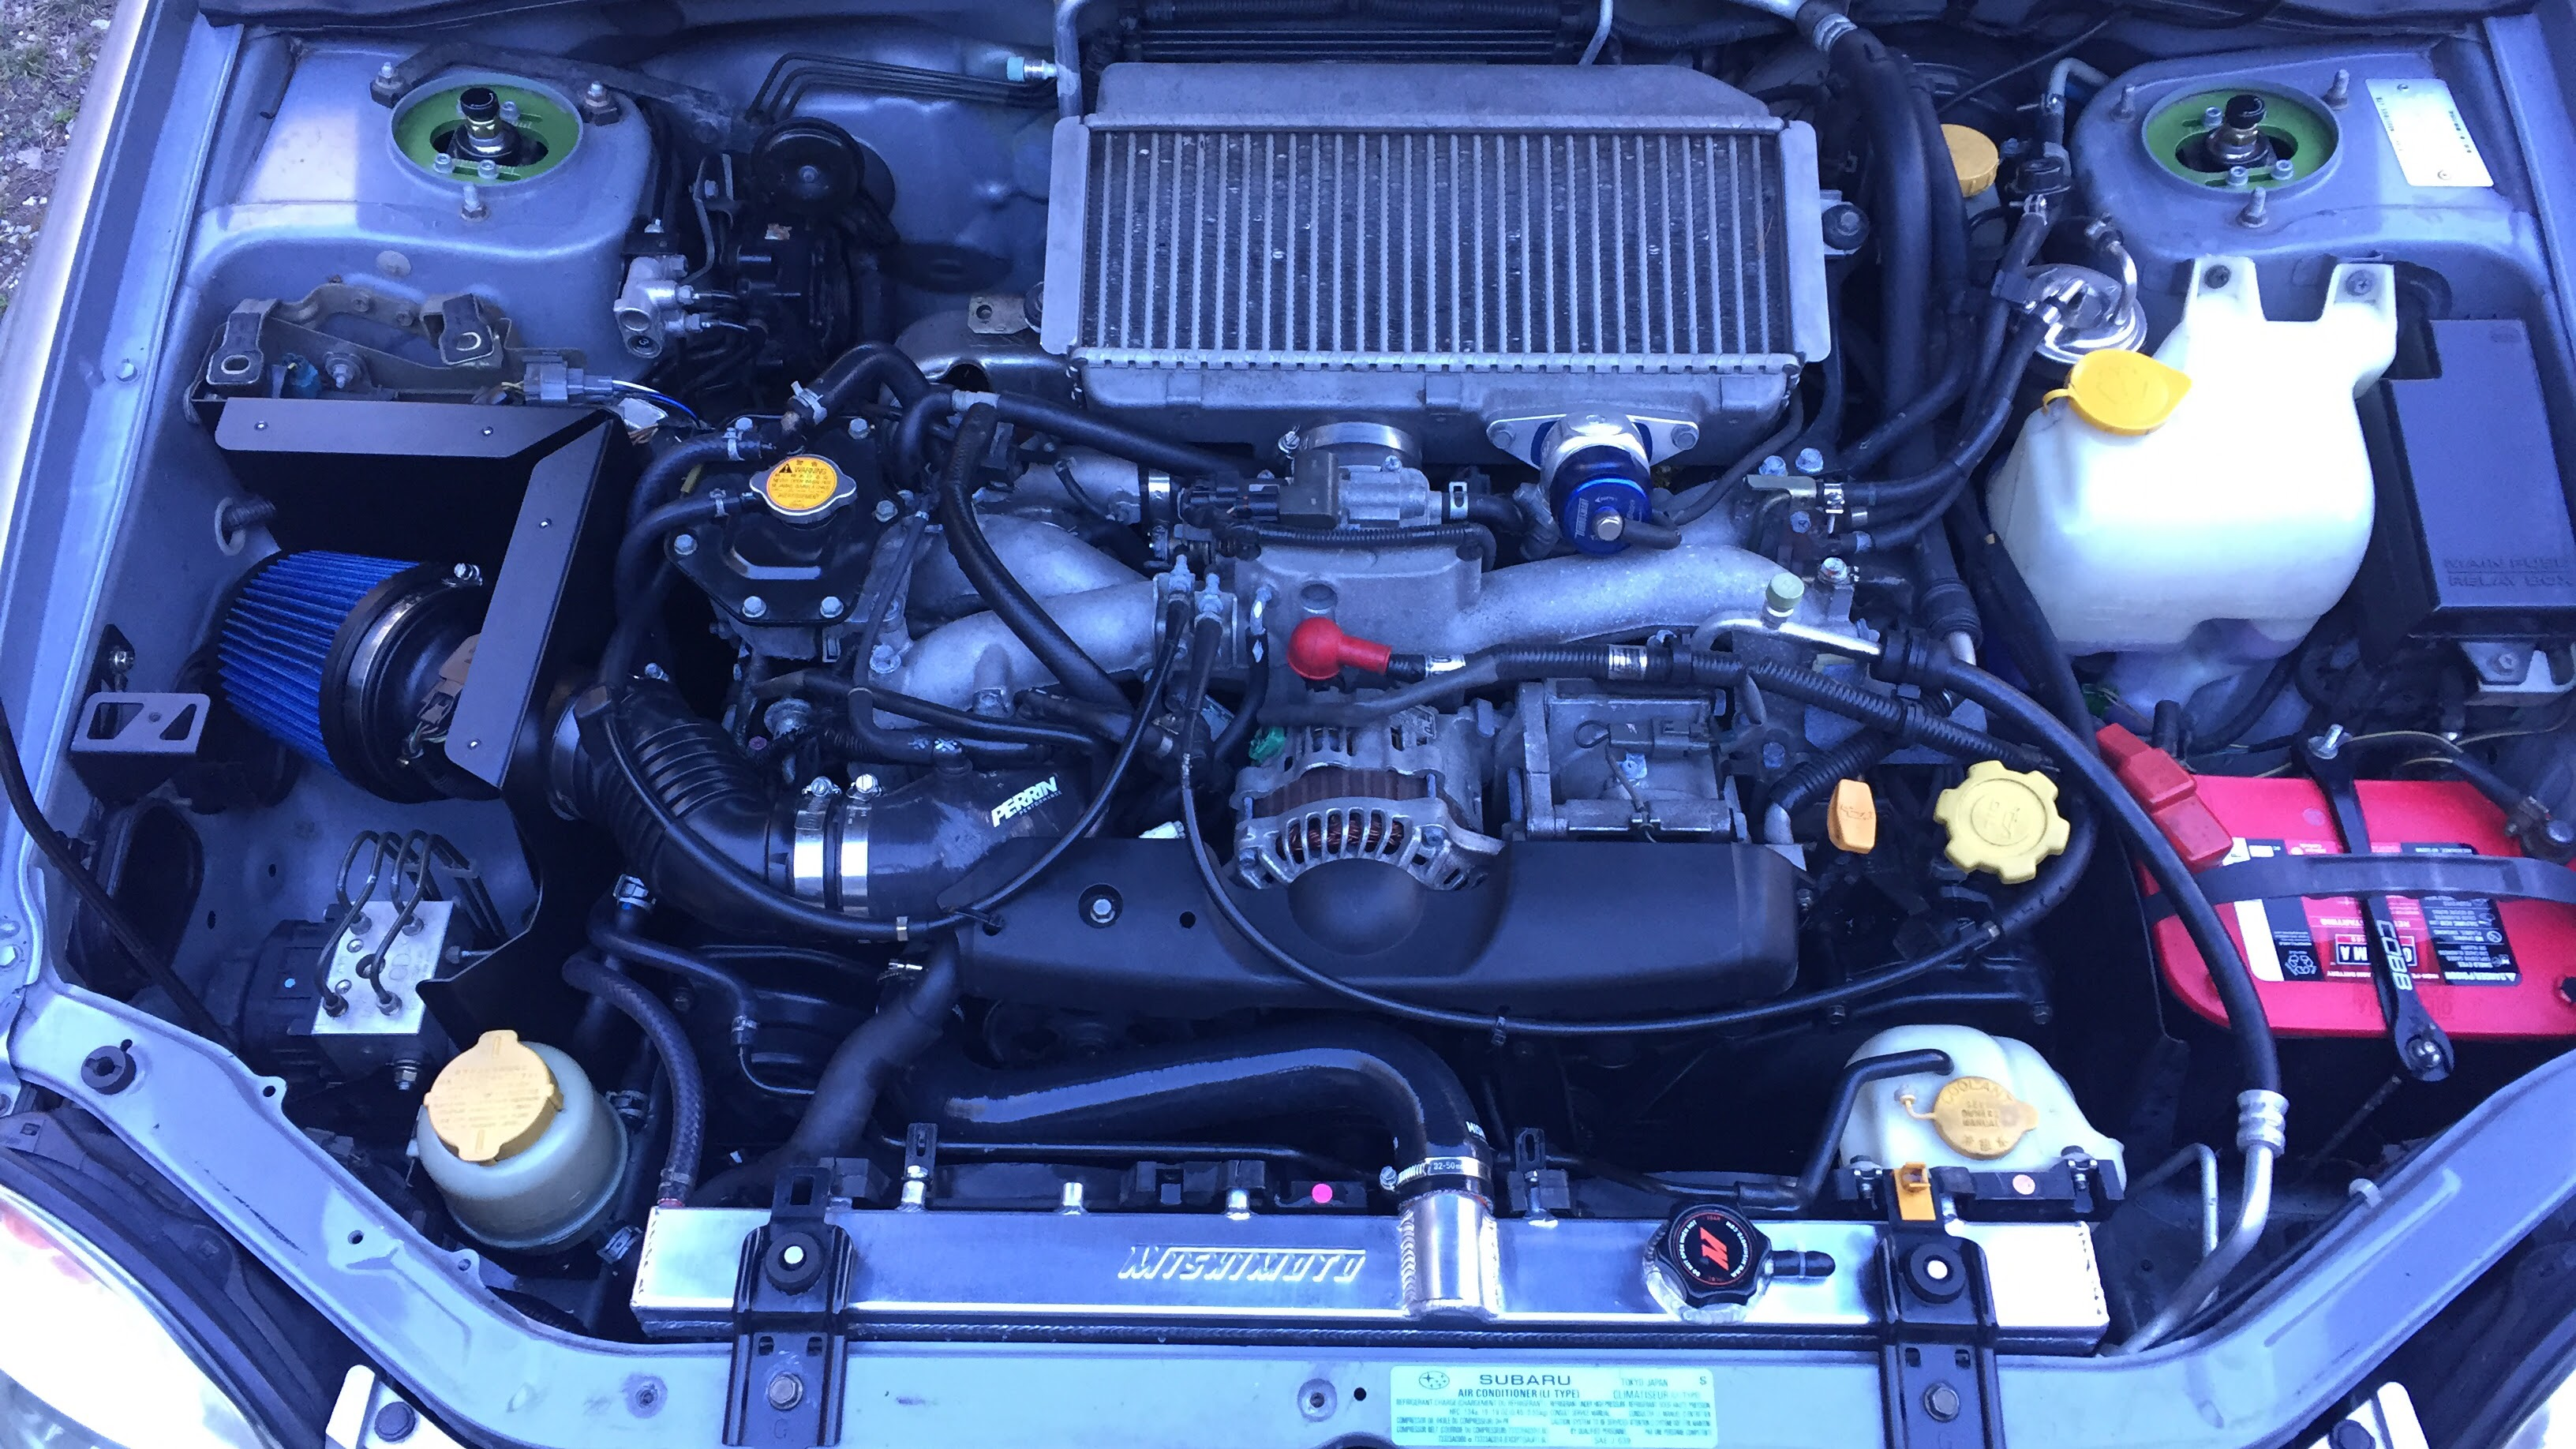 COBB Tuning SF Intake and Airbox, Mishimoto Radiator & Mishimoto Silicone Radiator Hose Install - 19170788